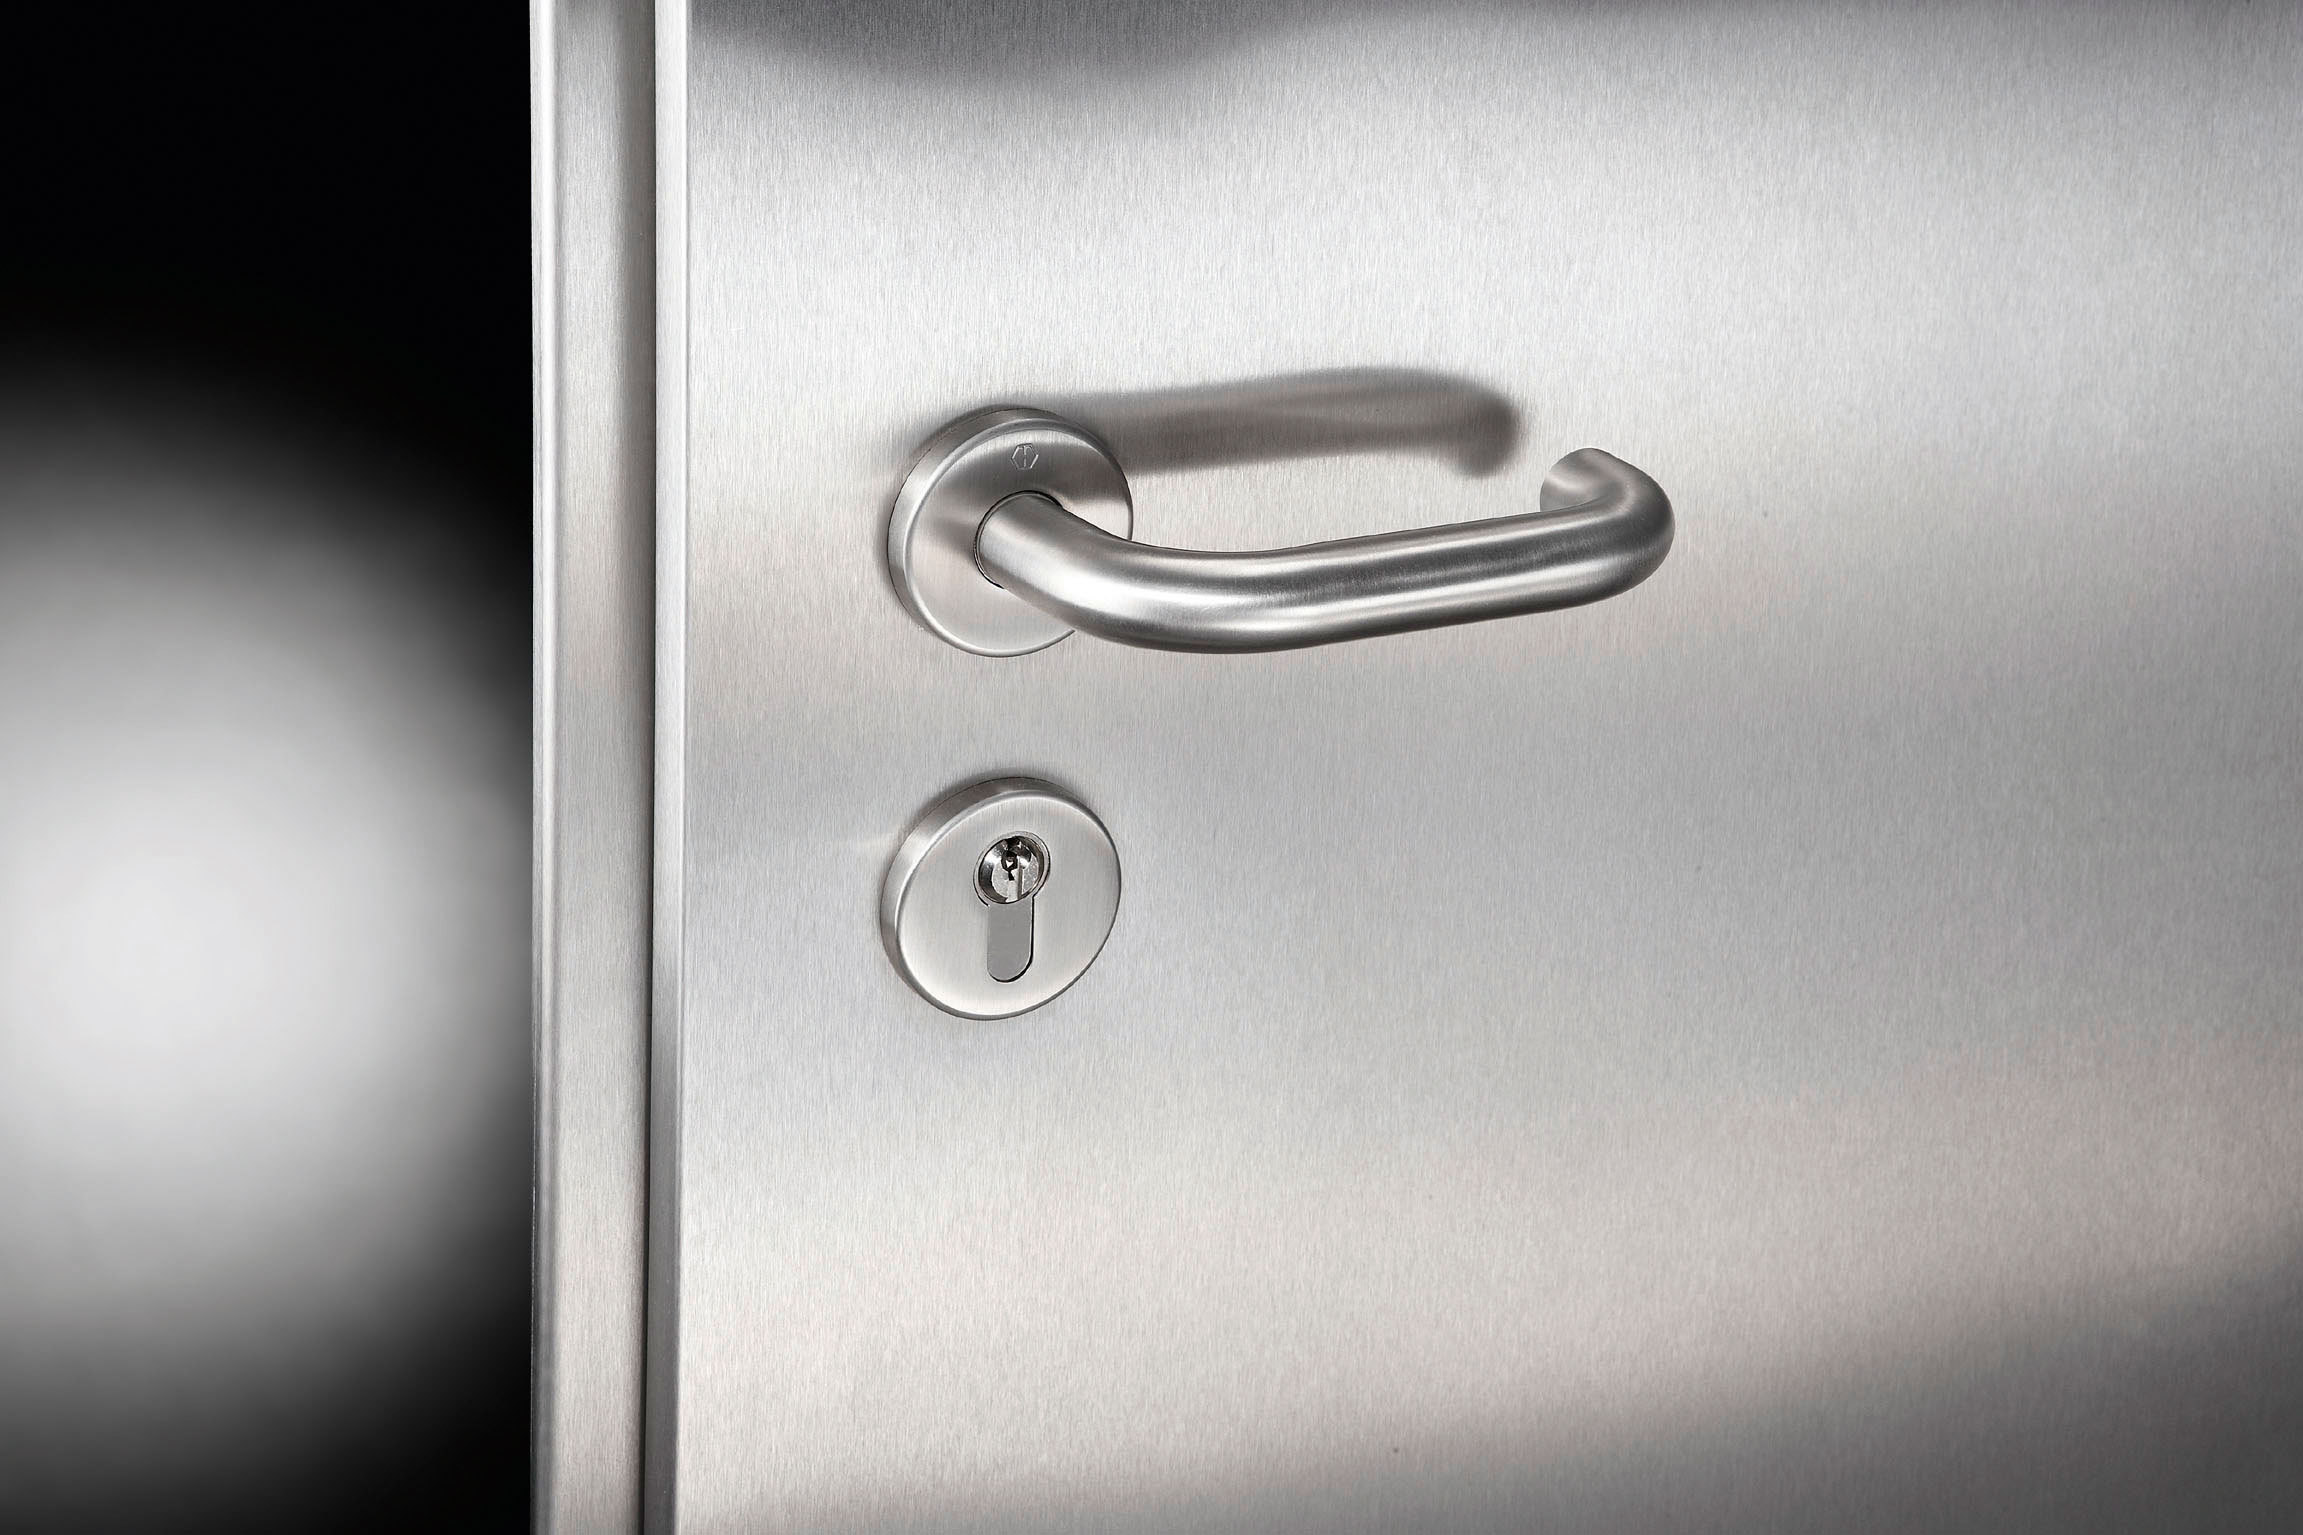 Steel door and handle